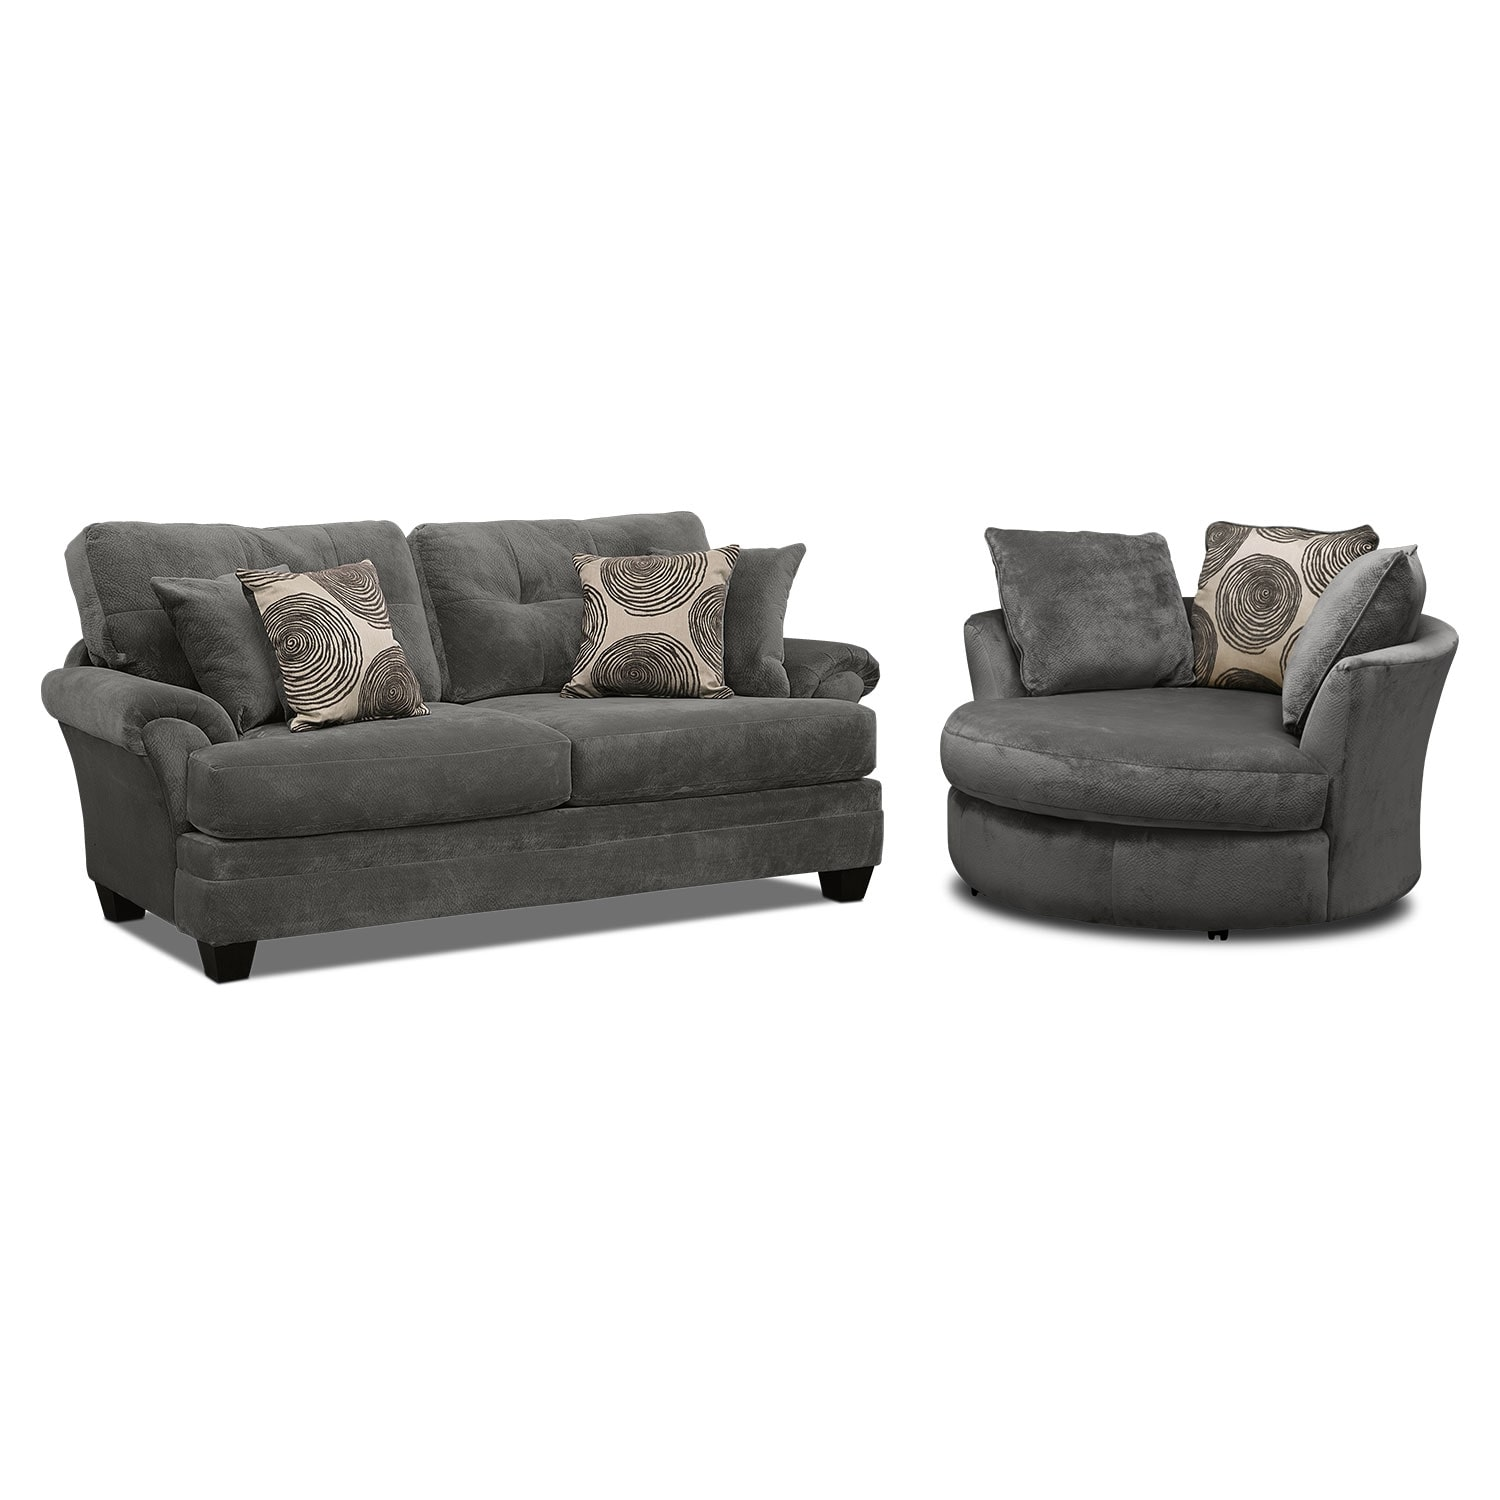 chair : Swivel Couch Chair Entertain Round Swivel Couch Chair ...